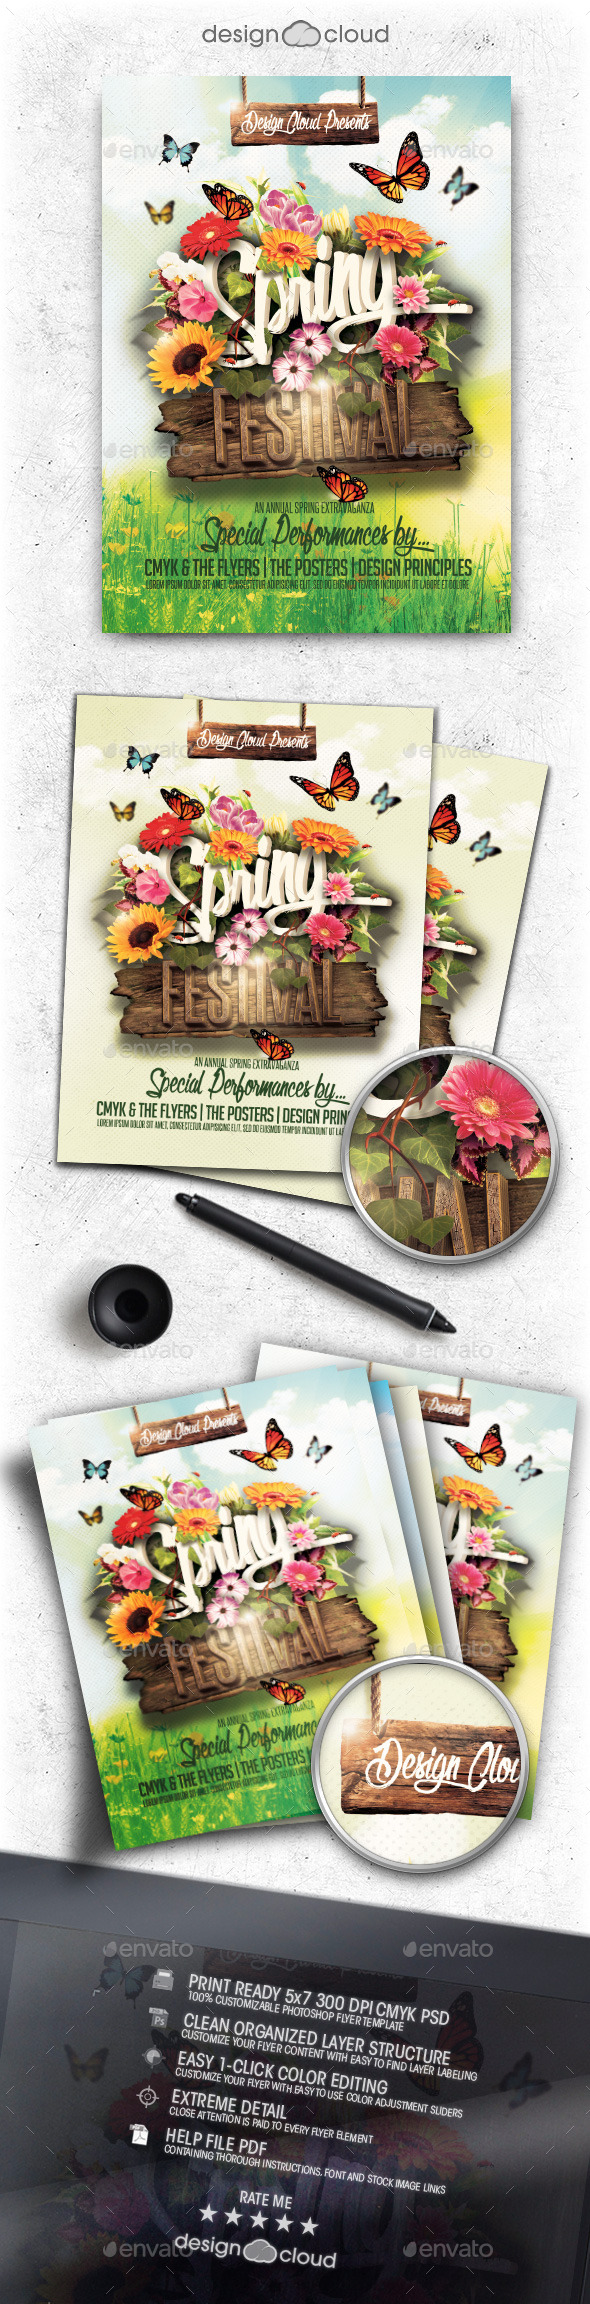 GraphicRiver Spring Festival Flyer Template 10414877